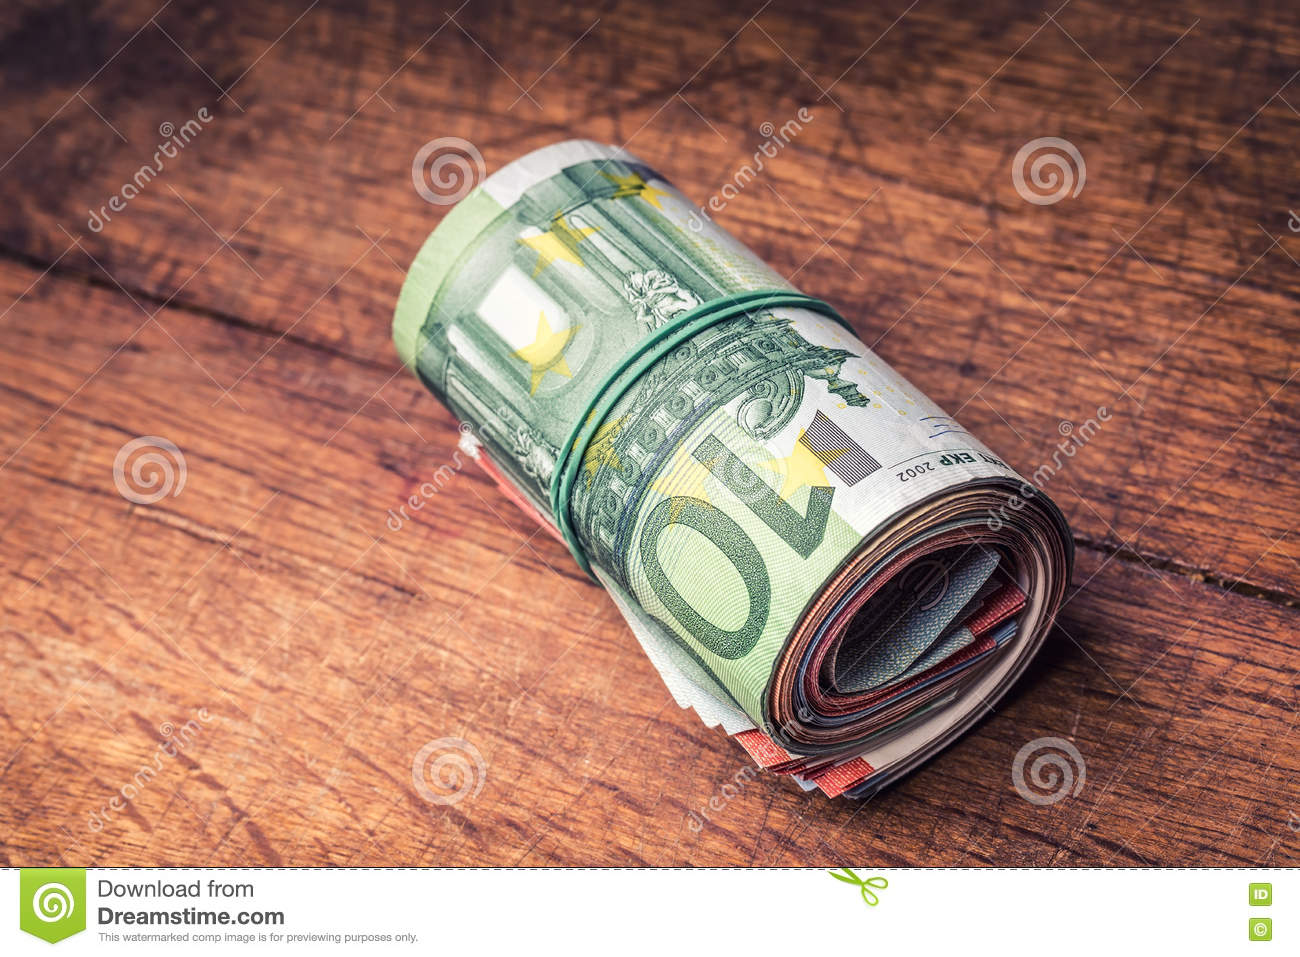 Euro banknotes. Euro currency. Euro money. Close-up Of A Rolled Euro Banknotes On concrete or Wooden table